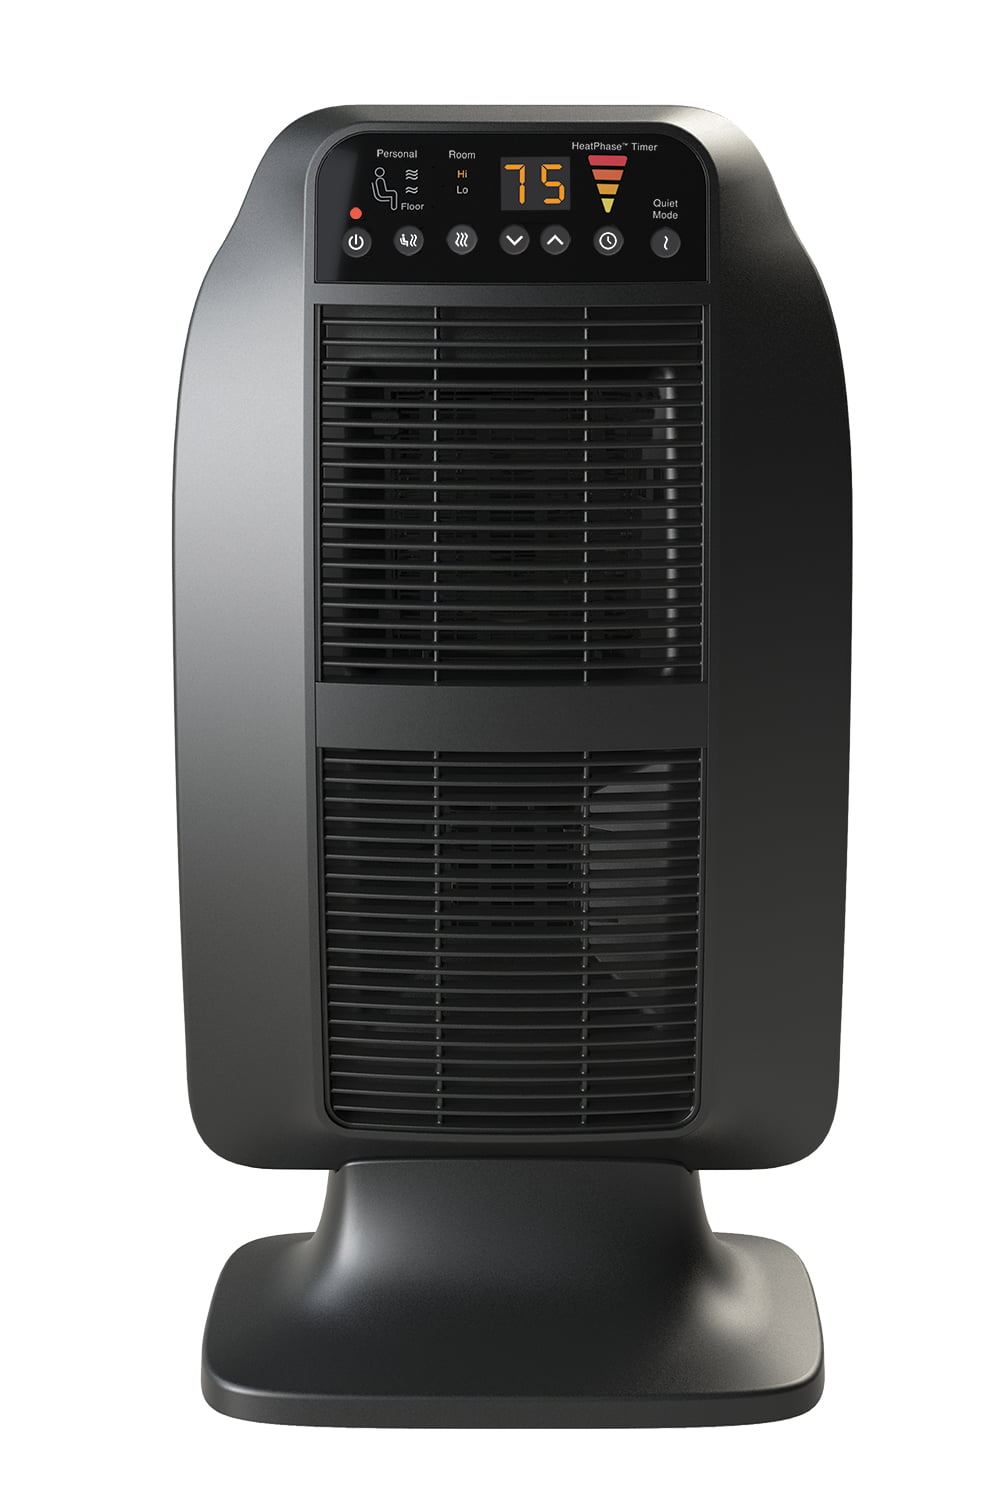 Honeywell Heat-Genius Ceramic Space Heater #HCE845B by Kaz Usa, Inc.